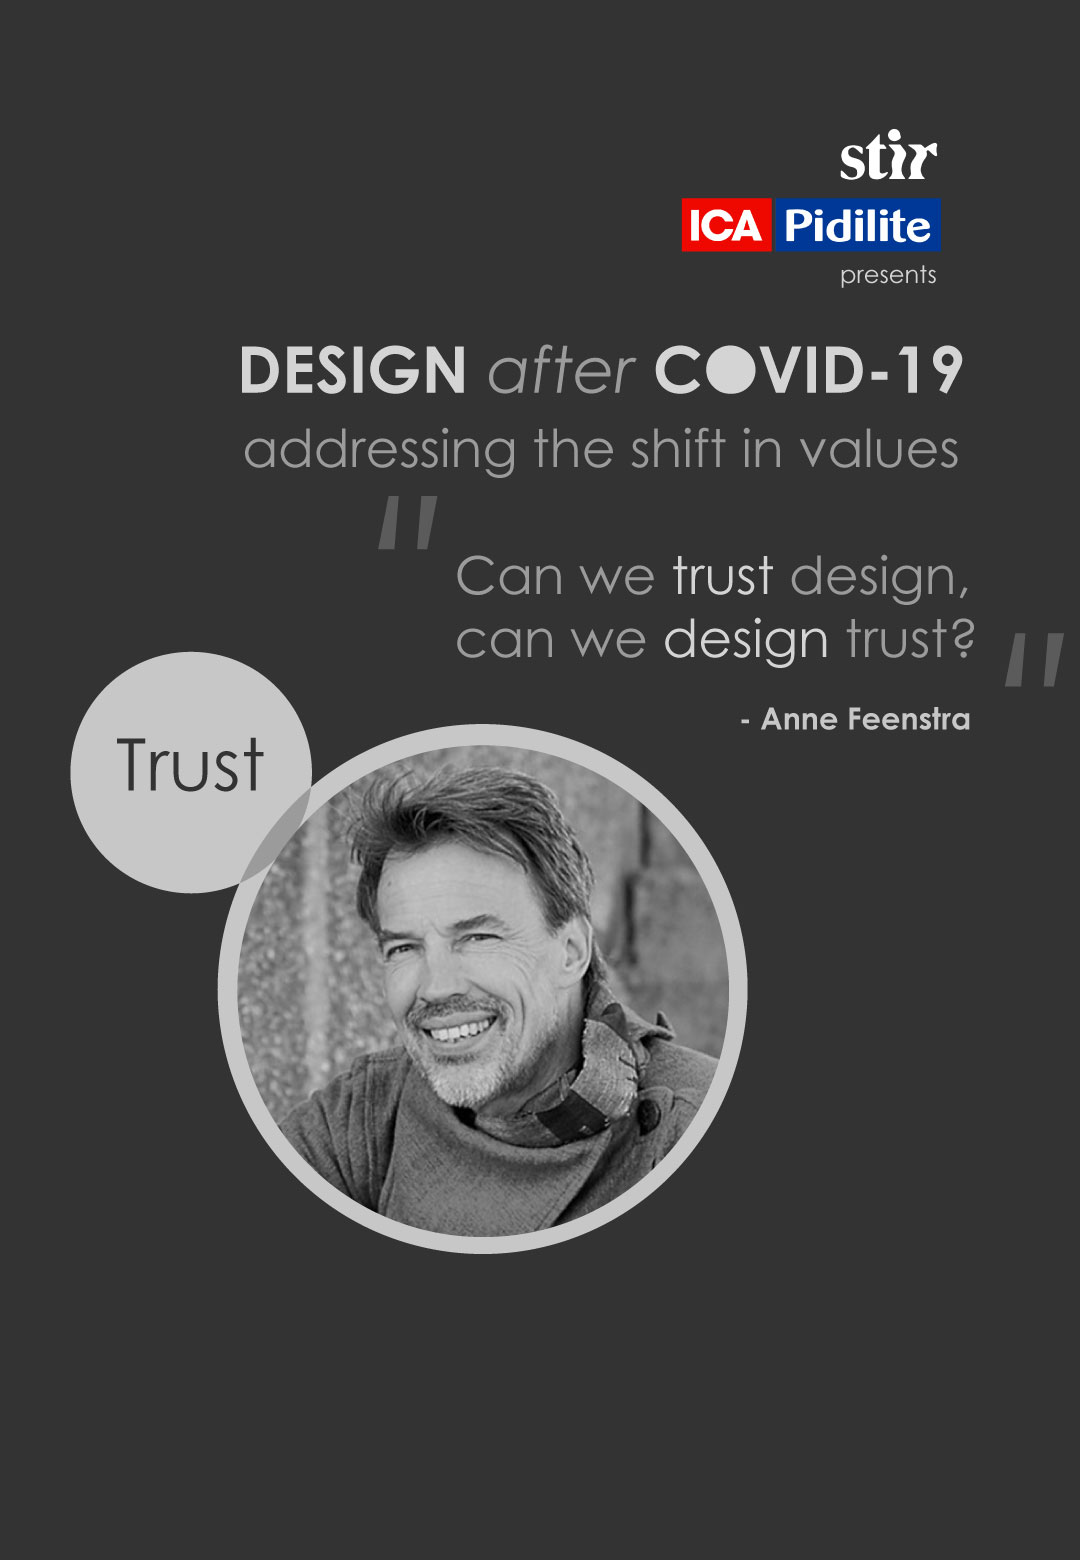 Prof. Anne Feenstra writes on the idea of 'trust' and its existence in the design world over the years and post-pandemic period | Anne Feenstra | Design after COVID-19| STIRworld